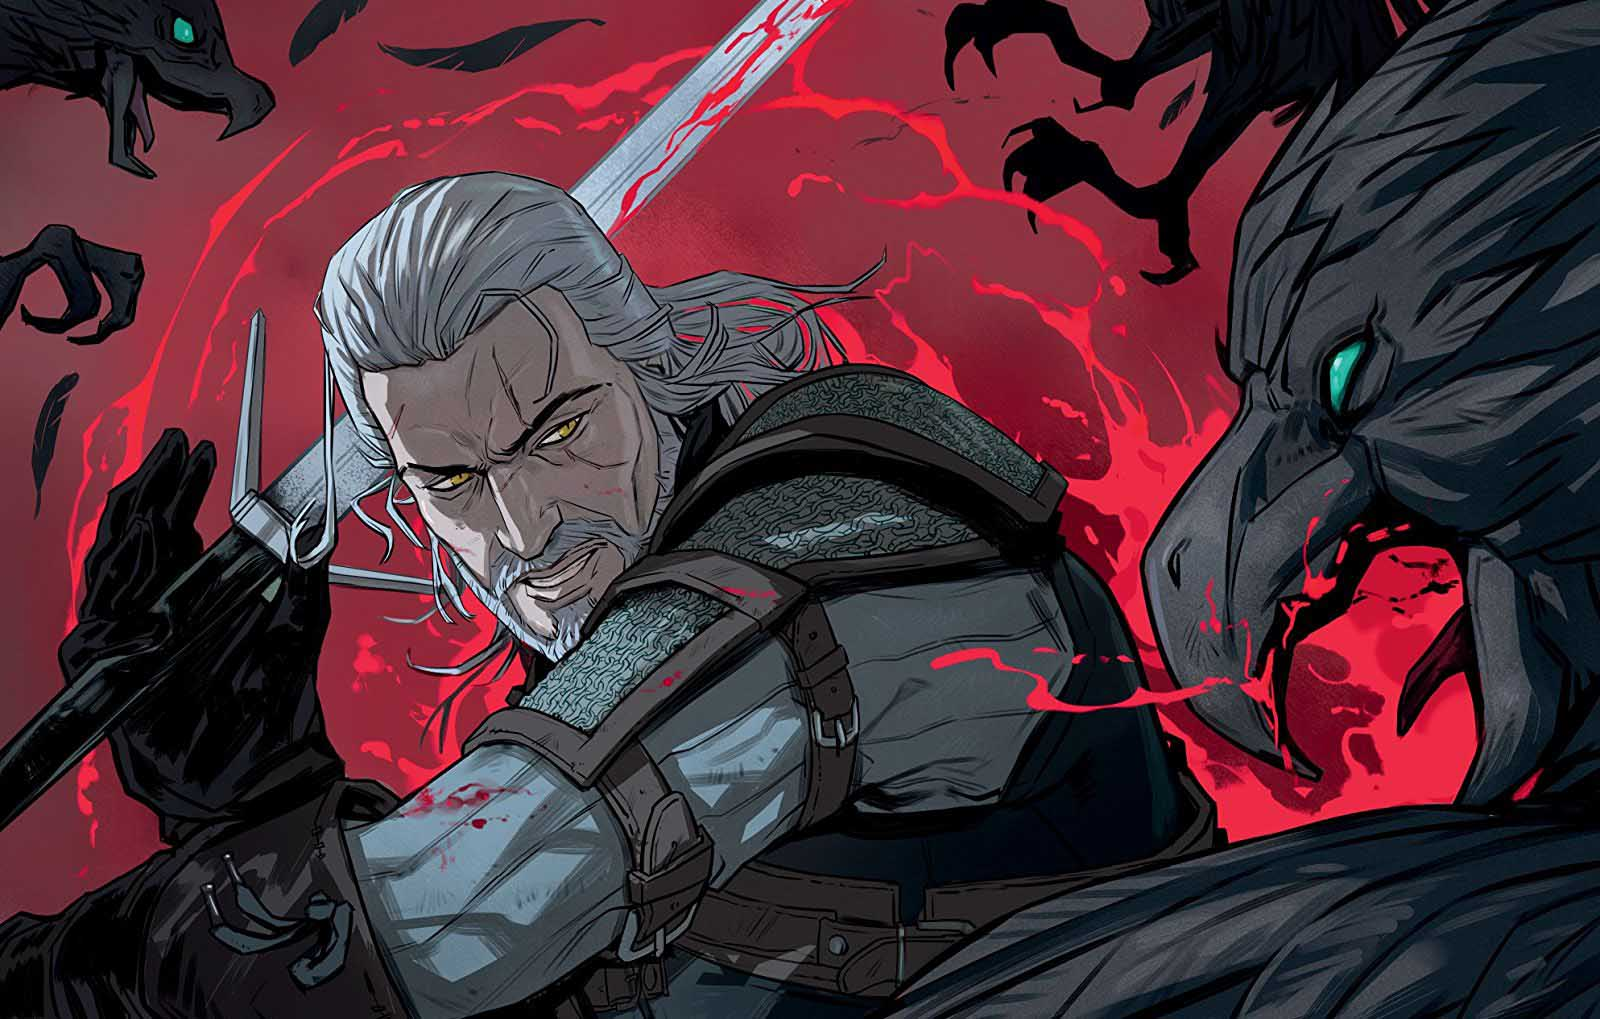 The Witcher tendrá una película anime en Netflix 5